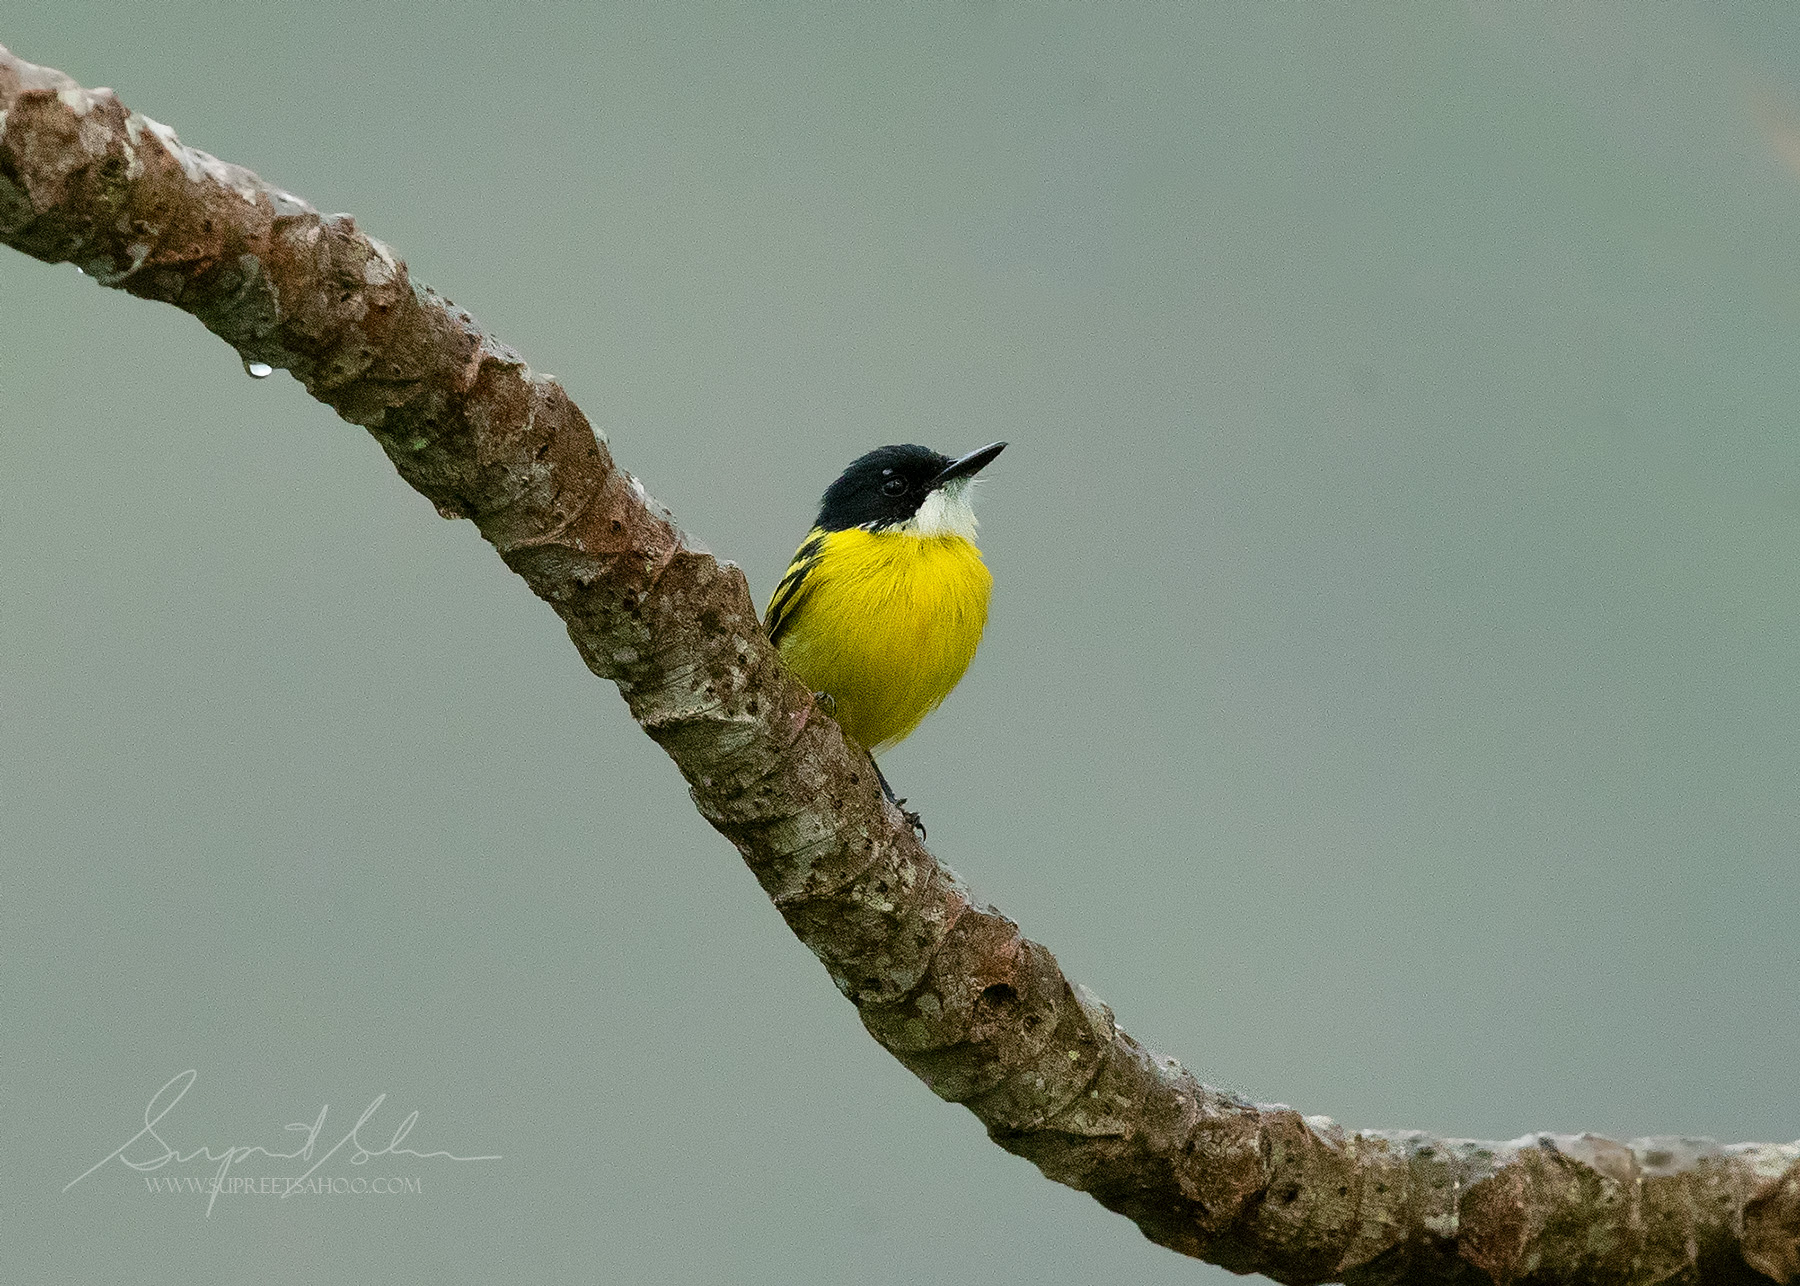 Black headed tody-flycatcher